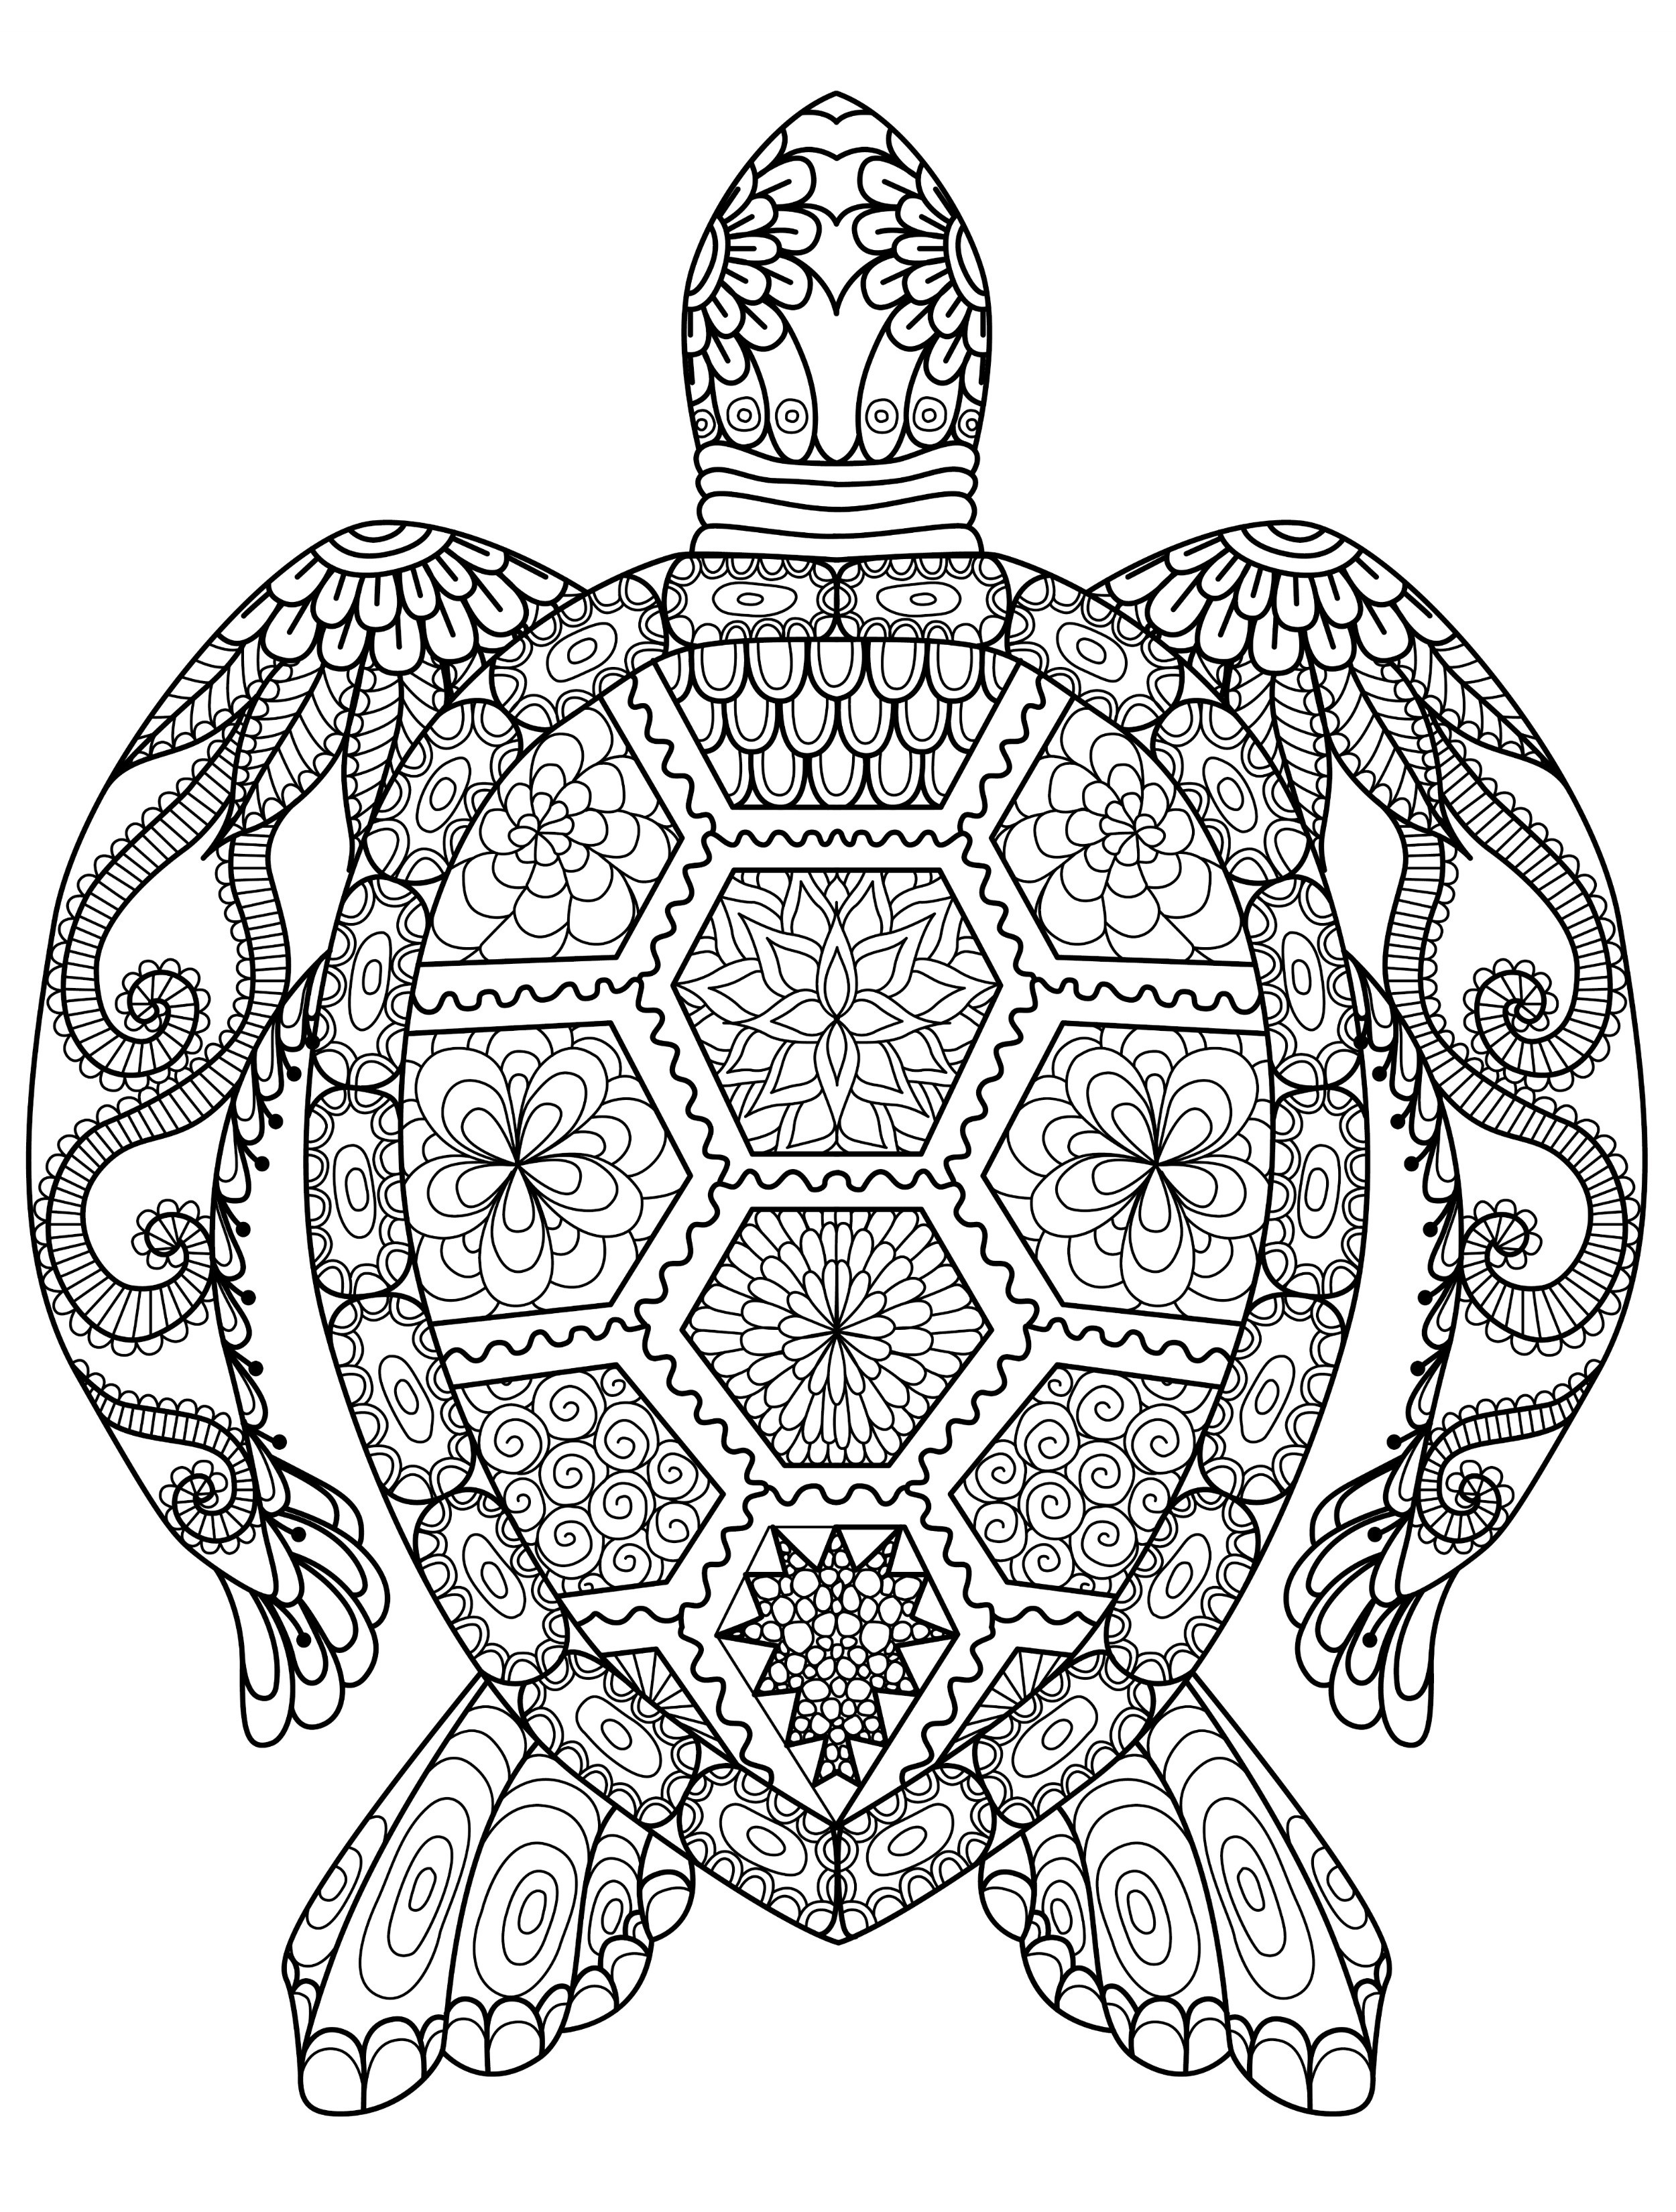 coloring prints for adults free printable abstract coloring pages for adults adults prints for coloring 1 1